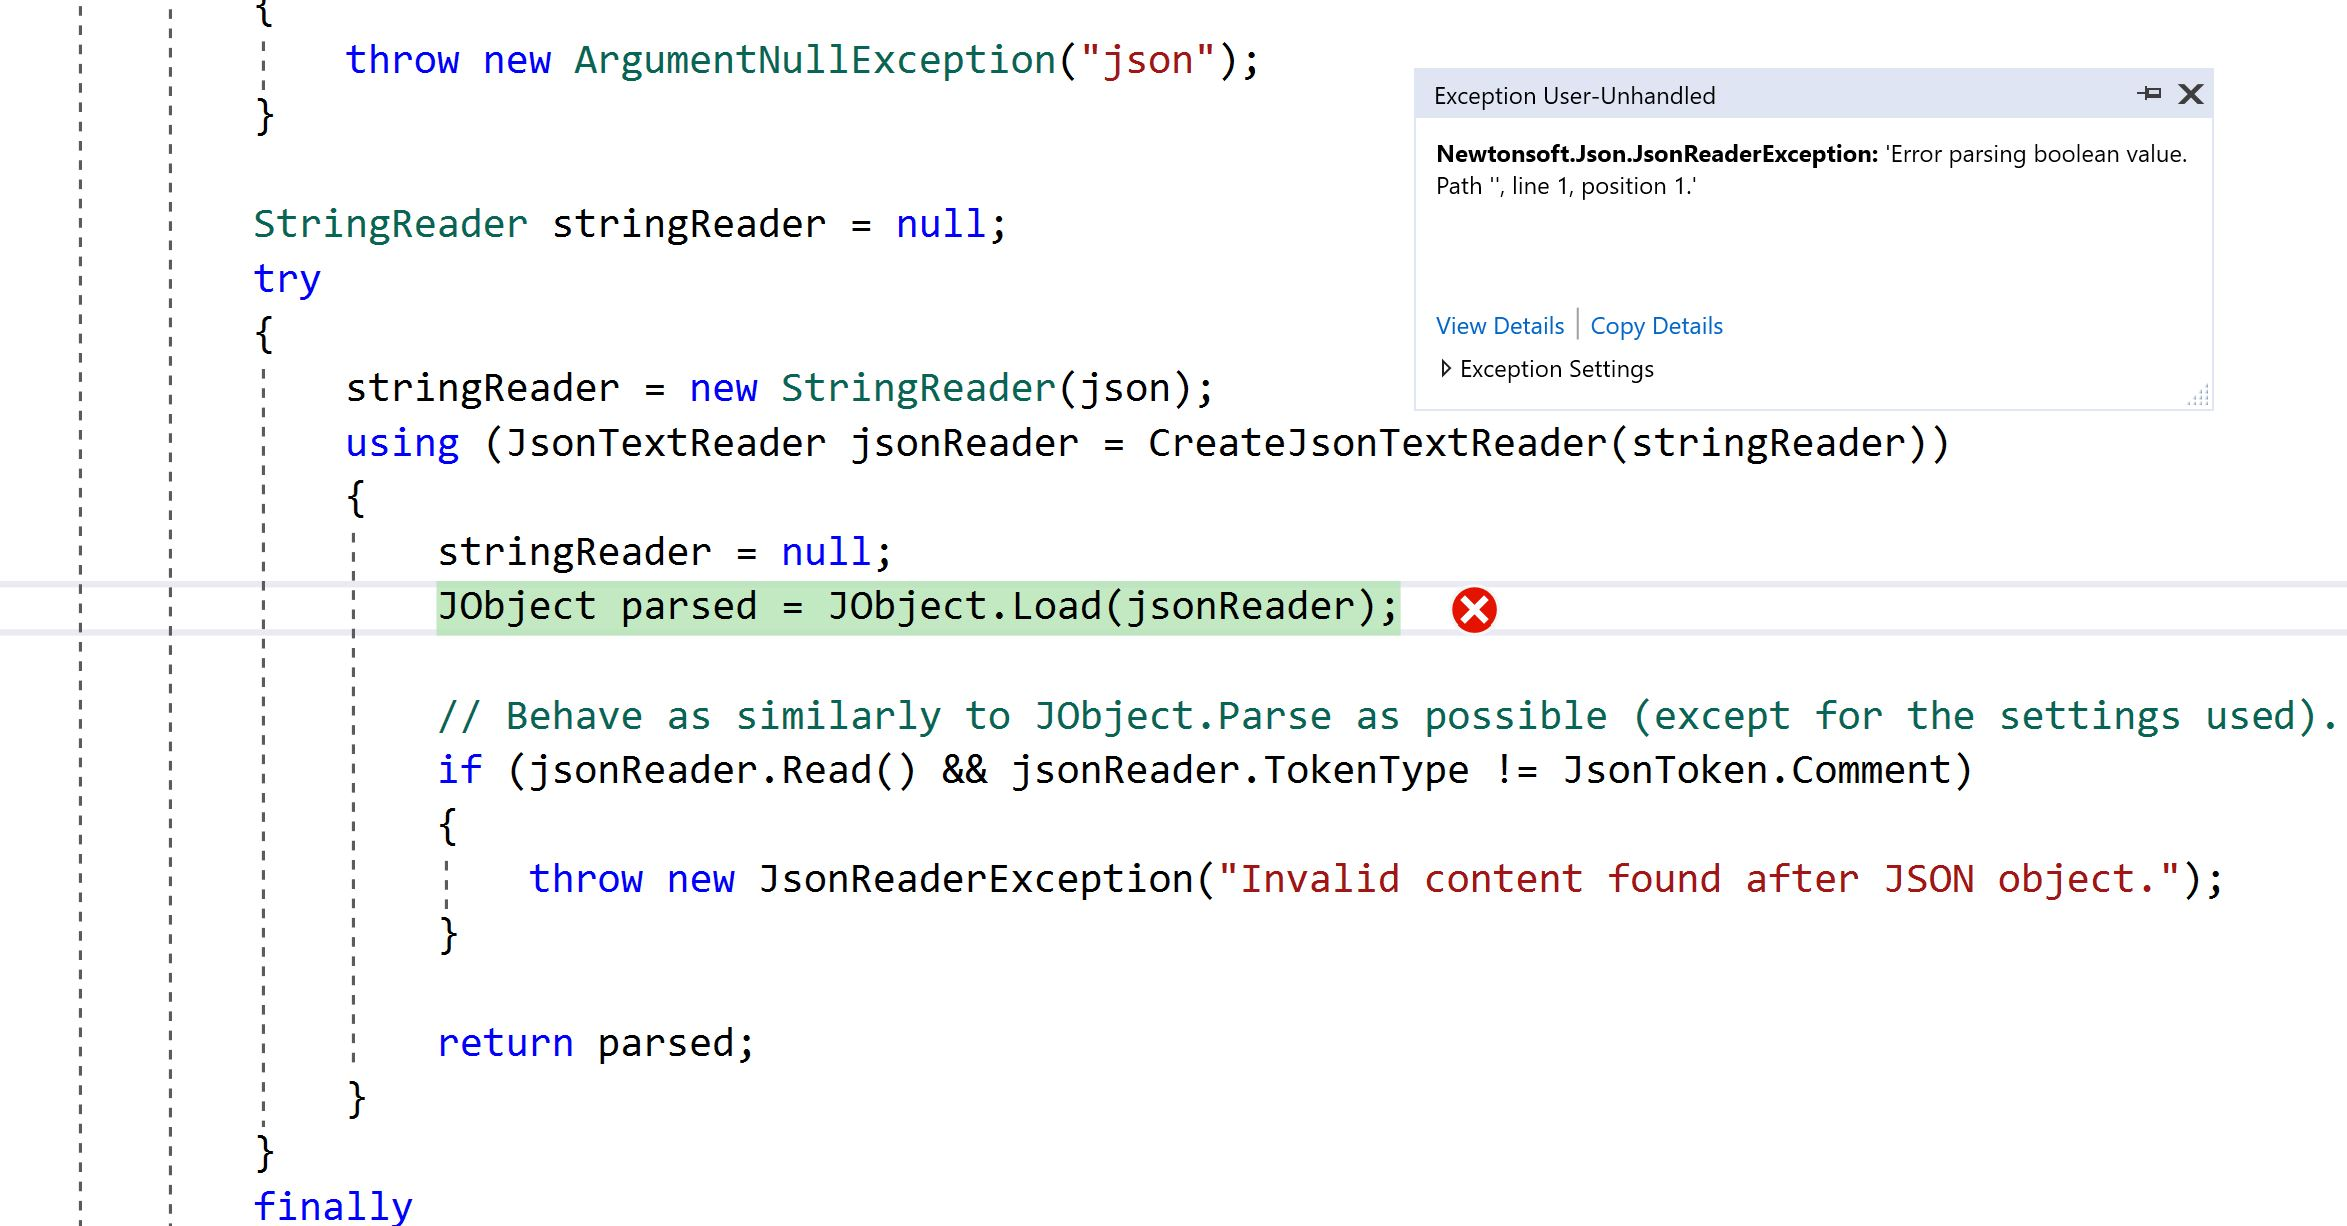 QueueTrigger appears to be broke with Microsoft NET Sdk Functions